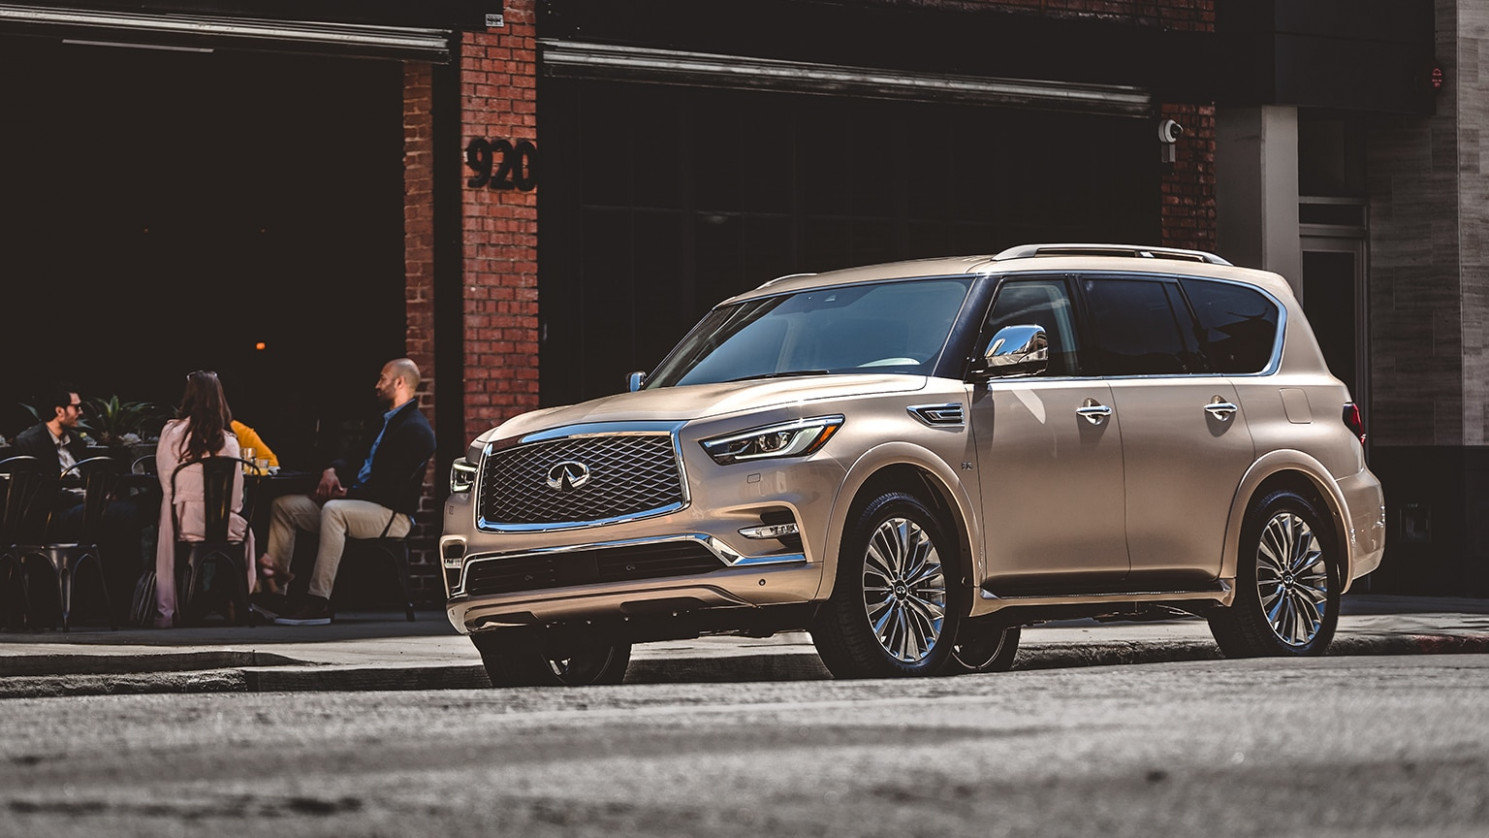 8 INFINITI QX8 SUV Colors and Photos | INFINITI USA